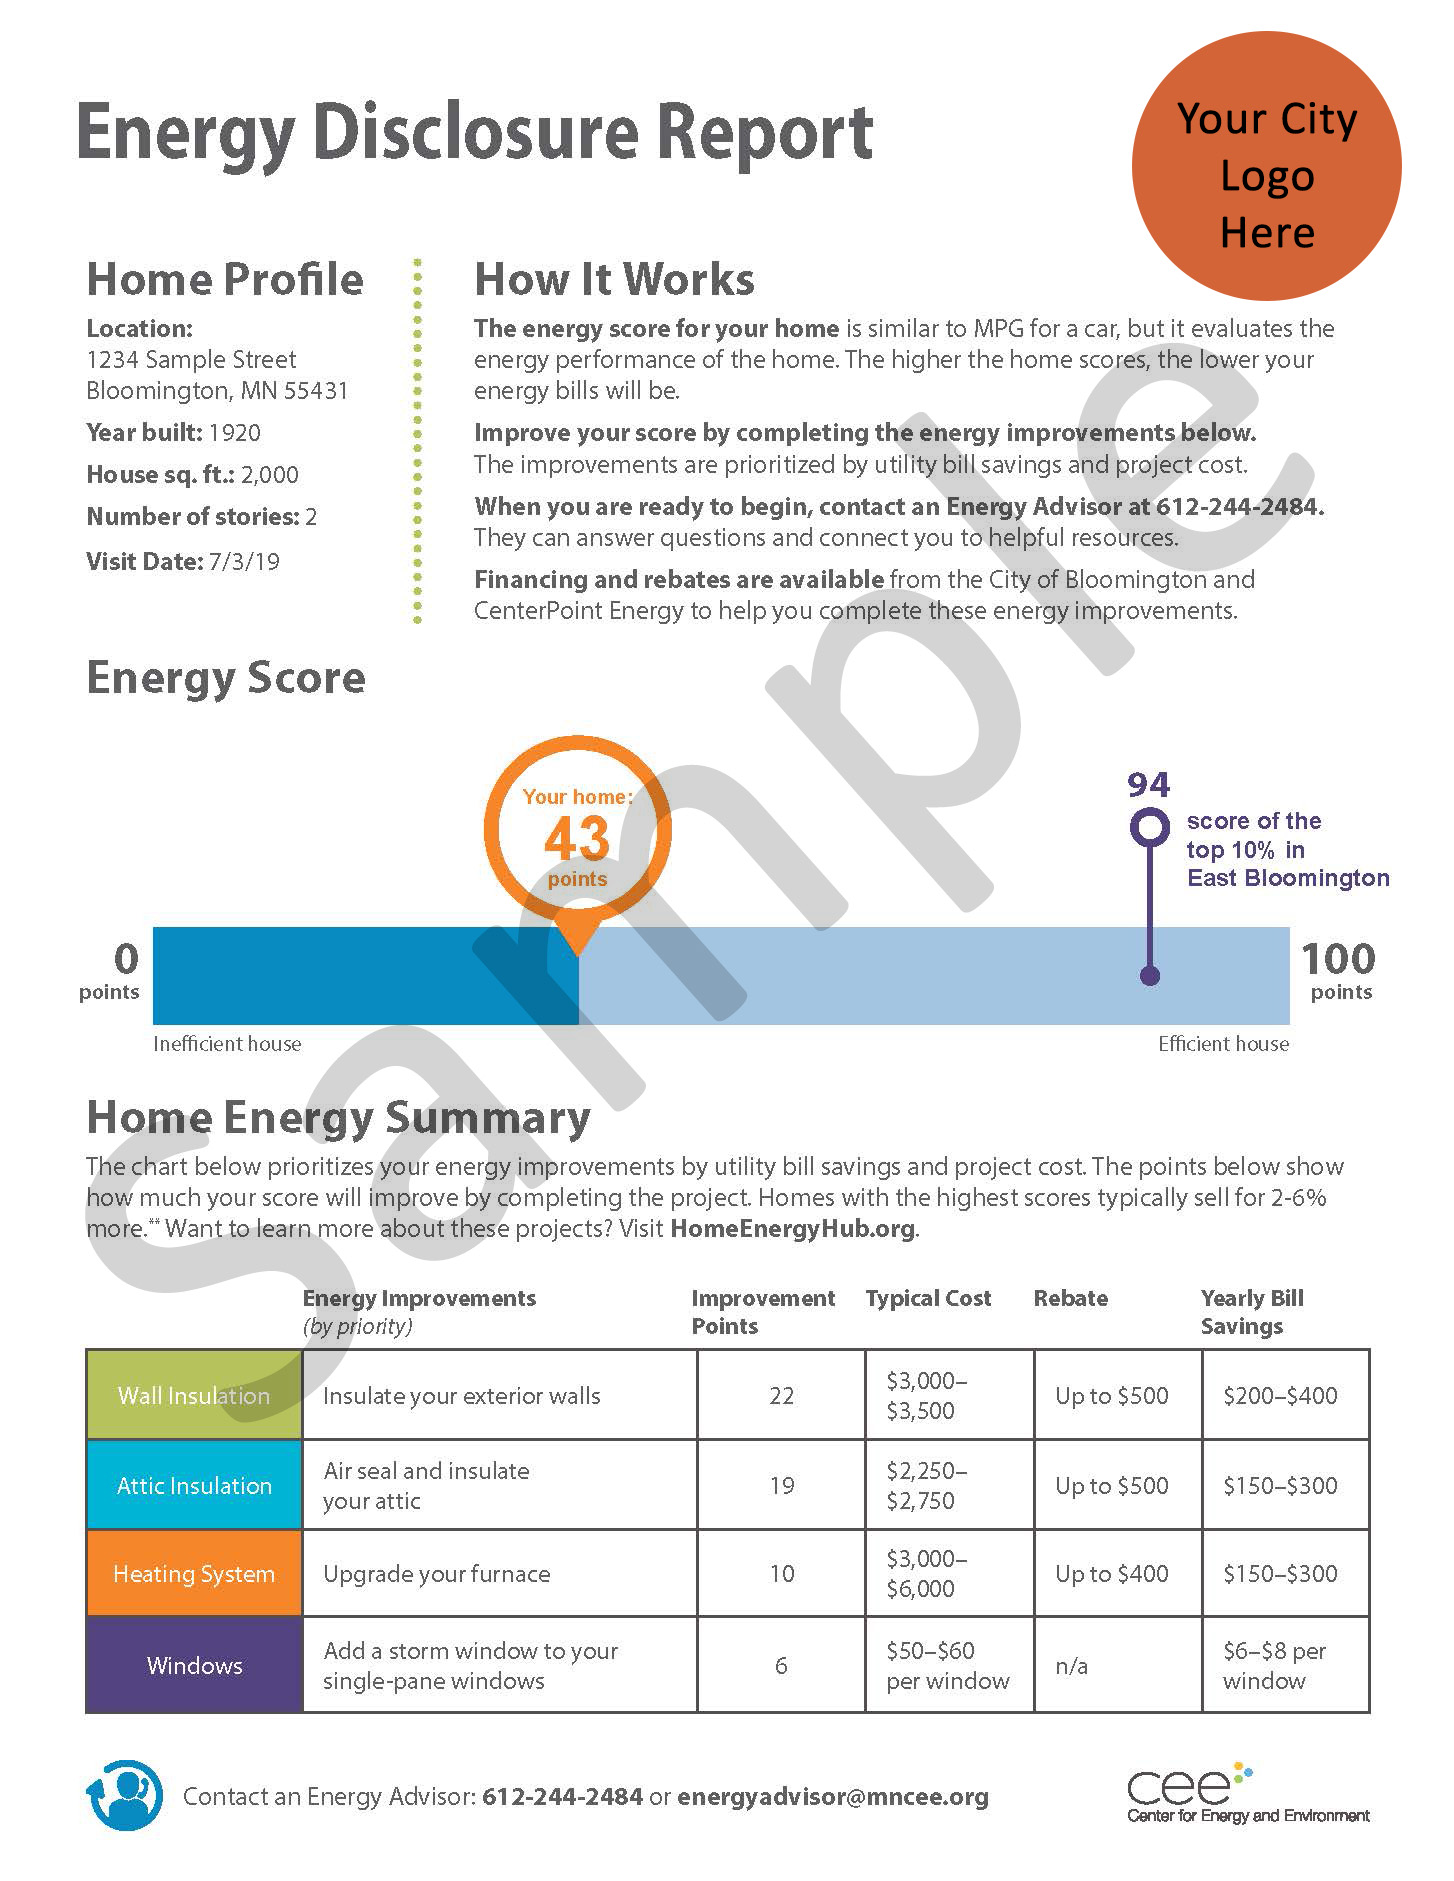 Sample first page of an energy disclosure report